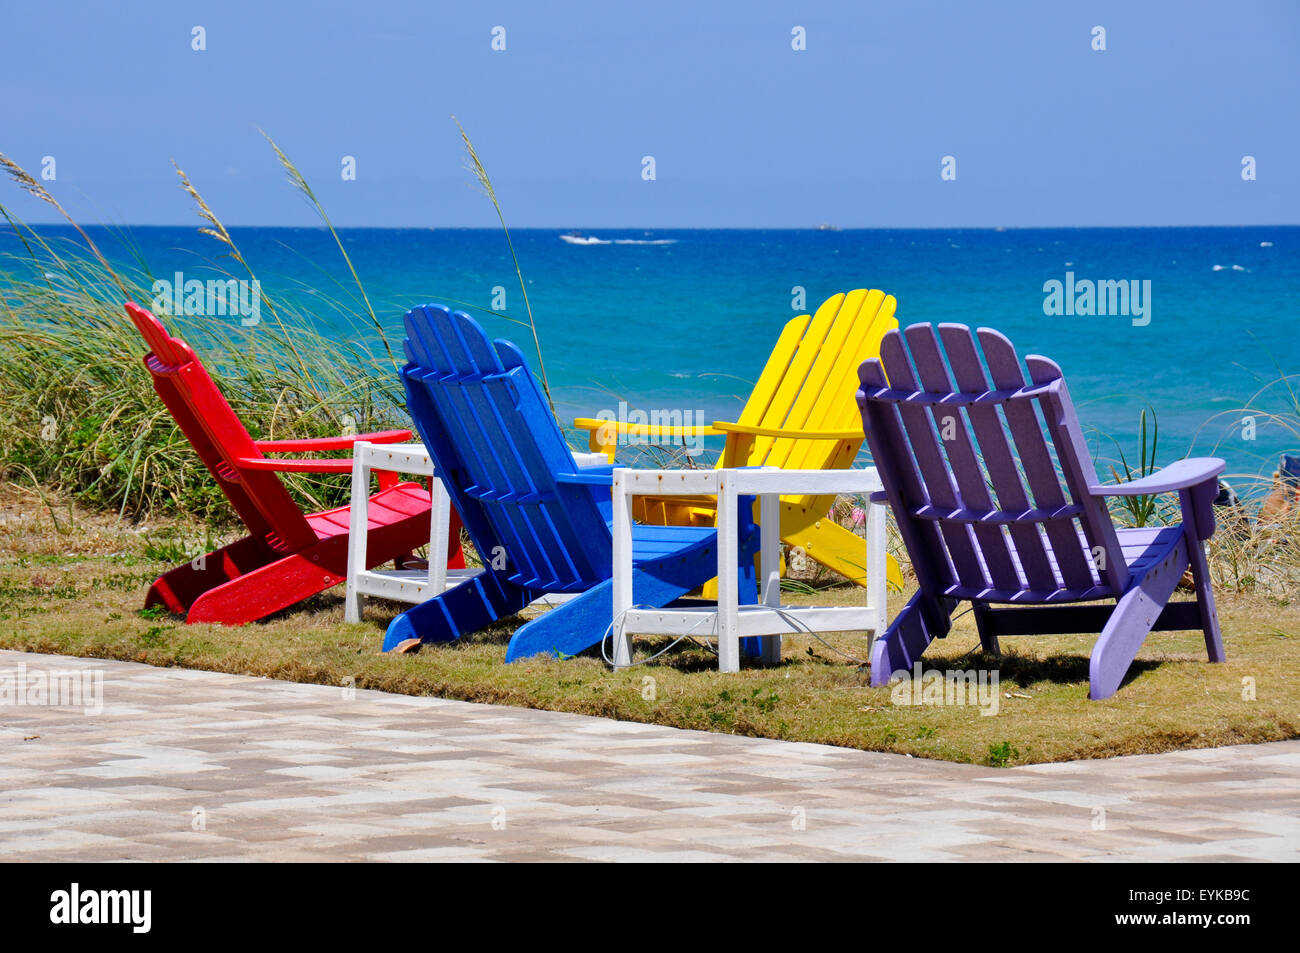 Four Colorful Adirondack Chairs Overlooking The Ocean And Beach At Fort  Lauderdale, Florida